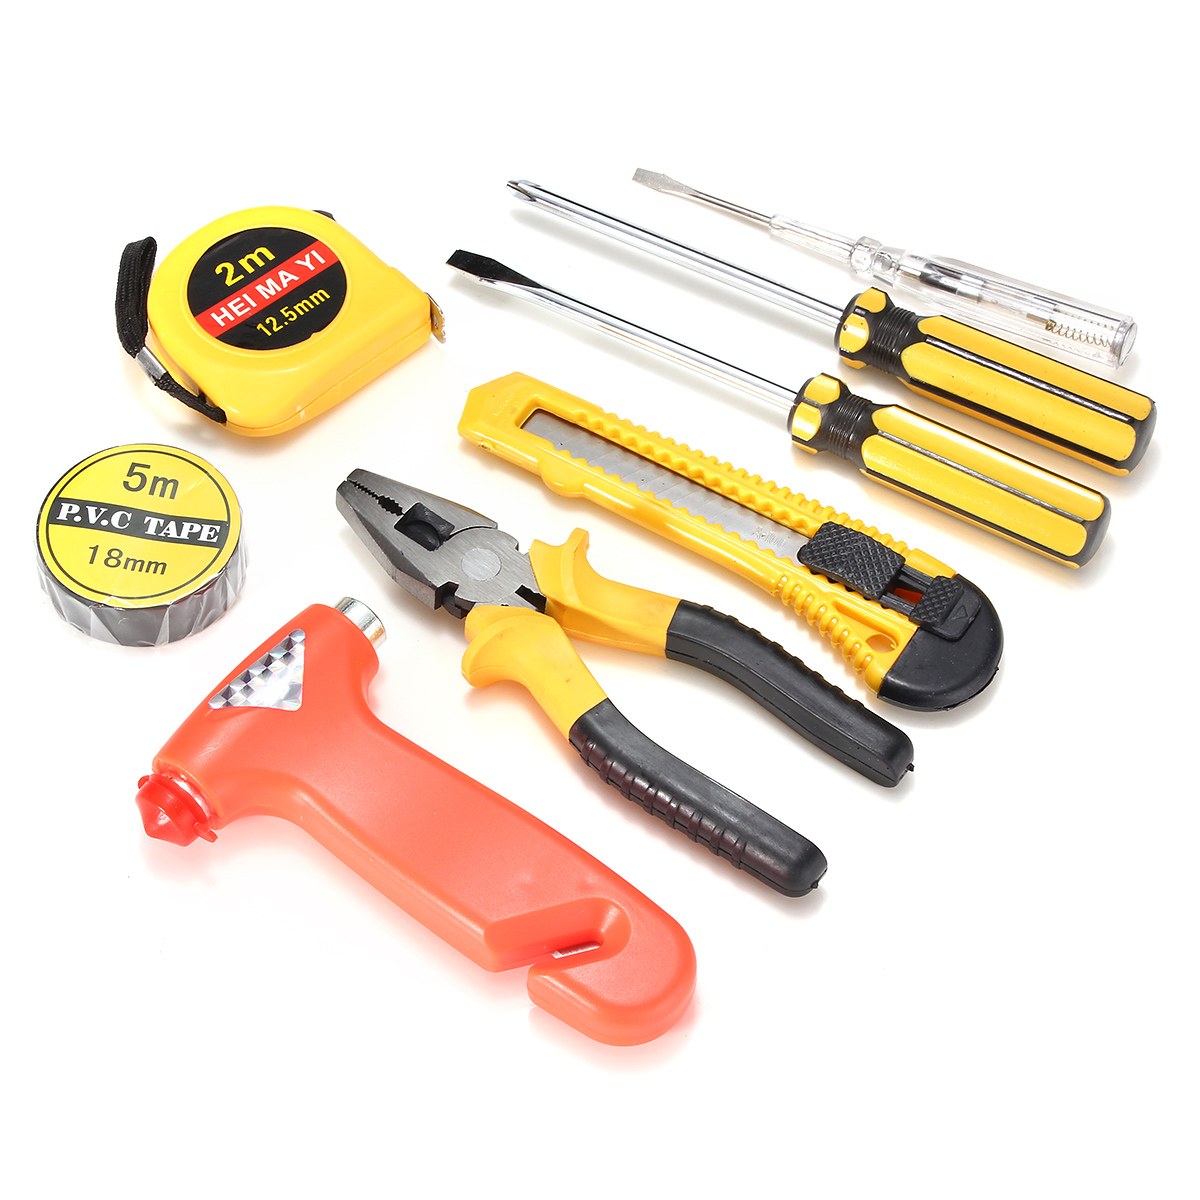 Tools Auto 9pcs Auto Car Household Repair Tool Set Combination Hand